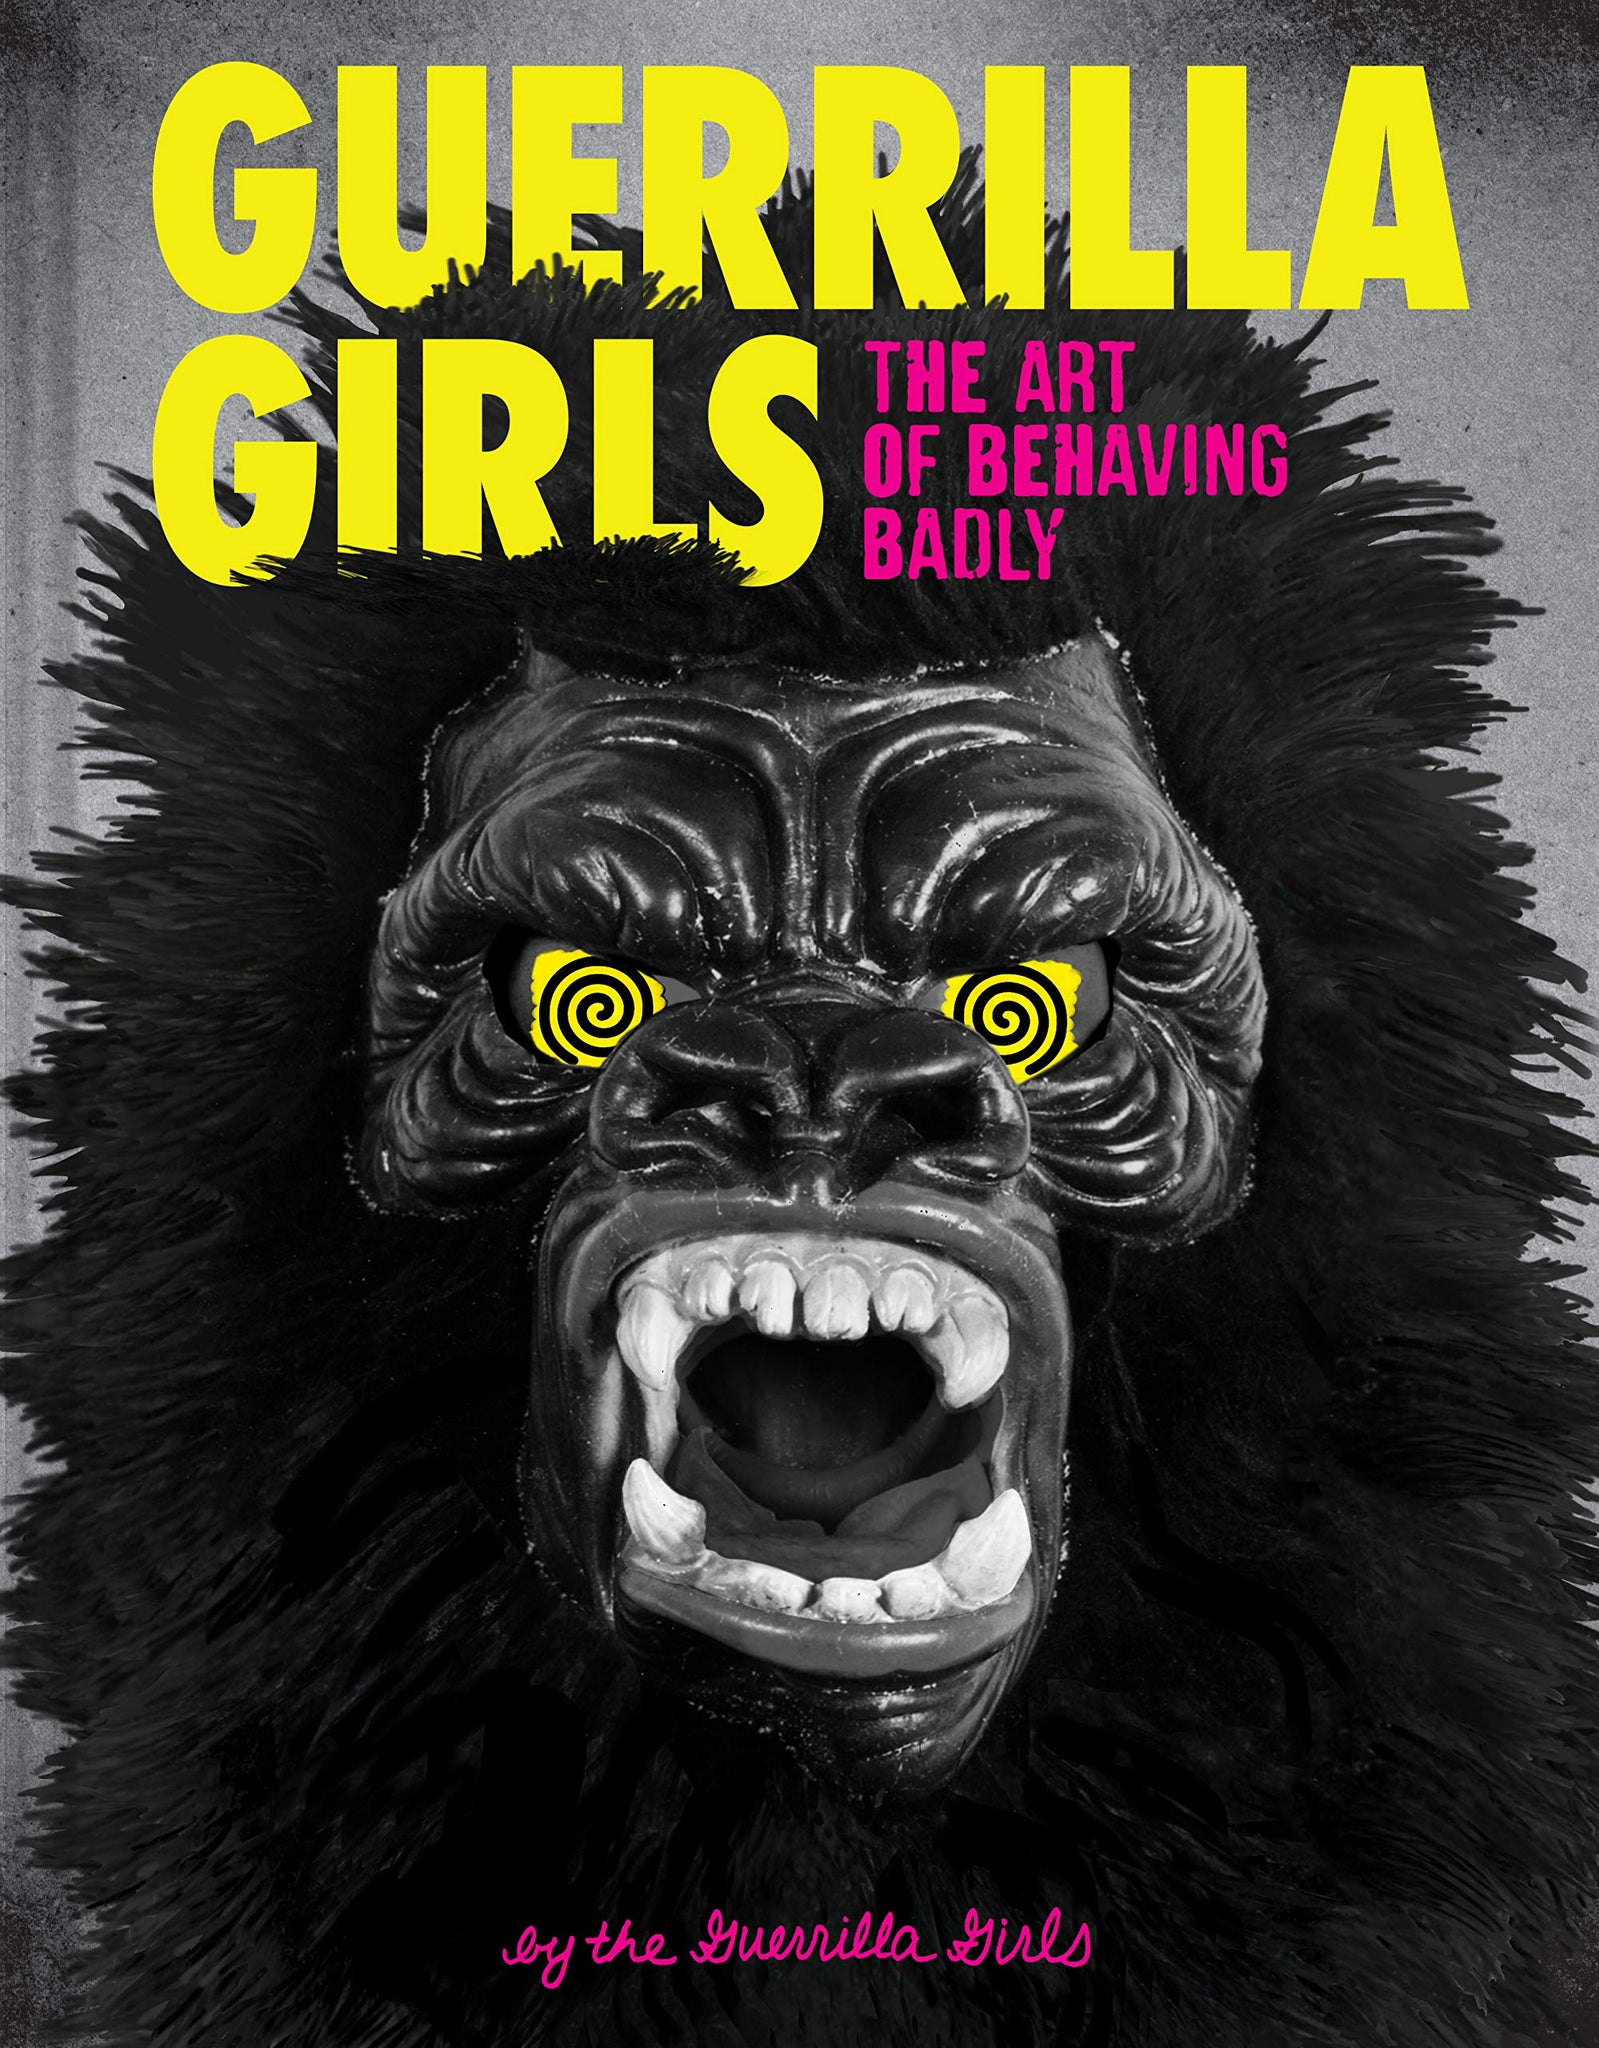 Guerrilla Girls the Art of Behaving Badly